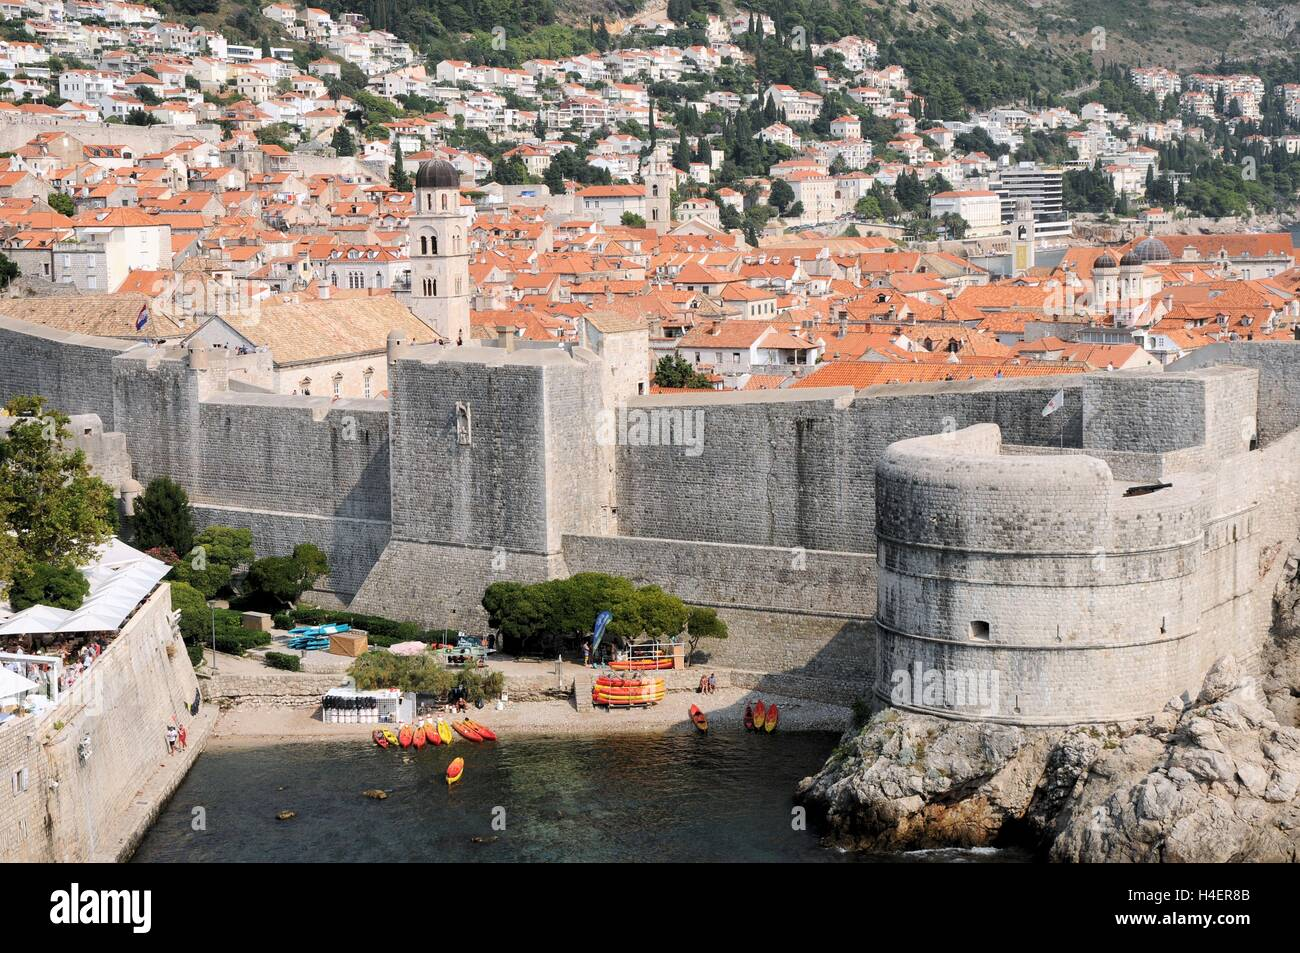 The Old Town of Dubrovnik, Croatia - Stock Image